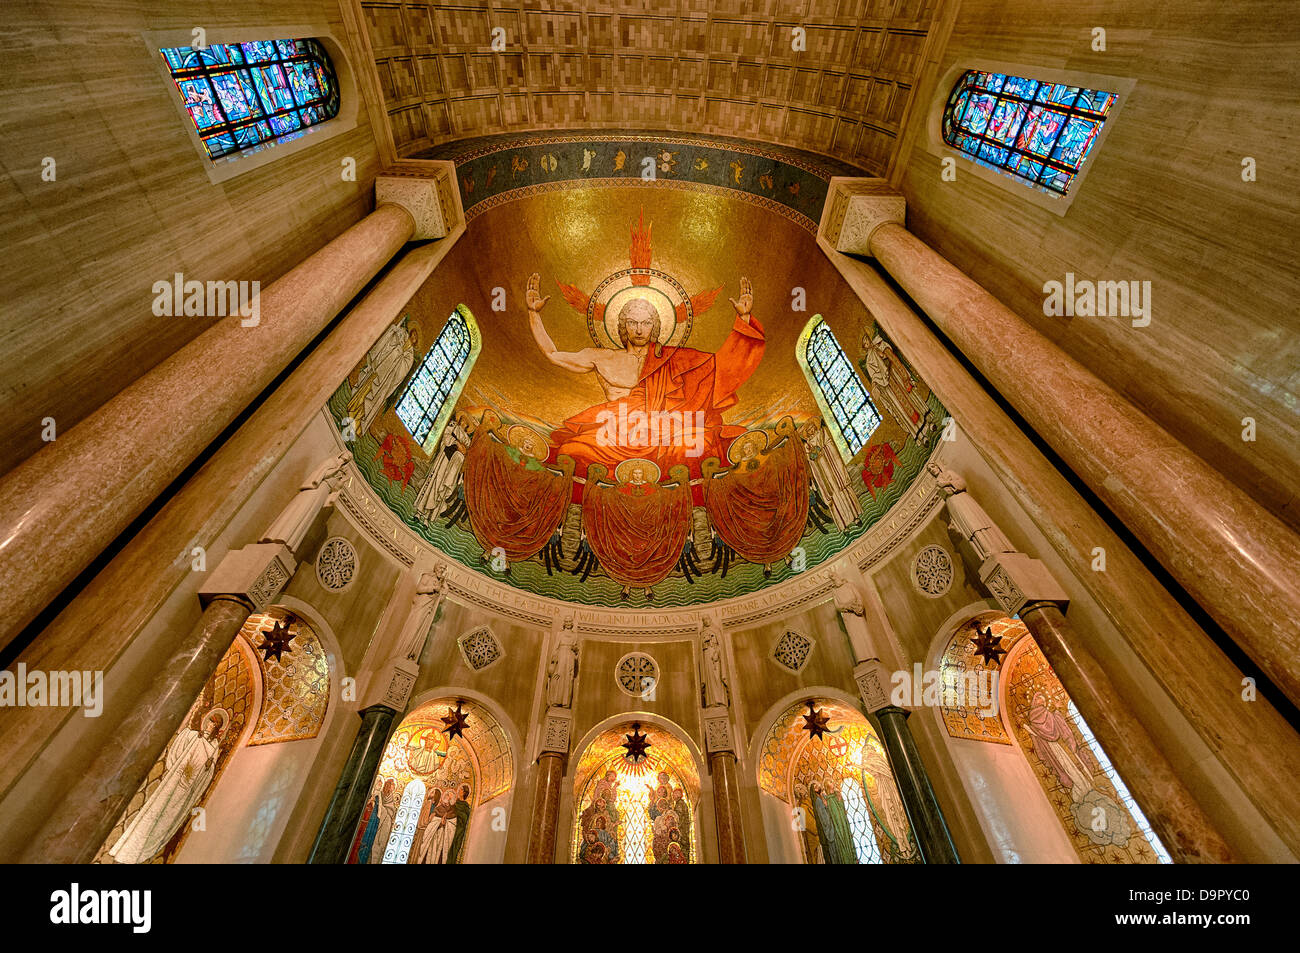 Christ in Majesty, North Apse, Basilica of the National Shrine of the Immaculate Conception, Washington DC, USA - Stock Image